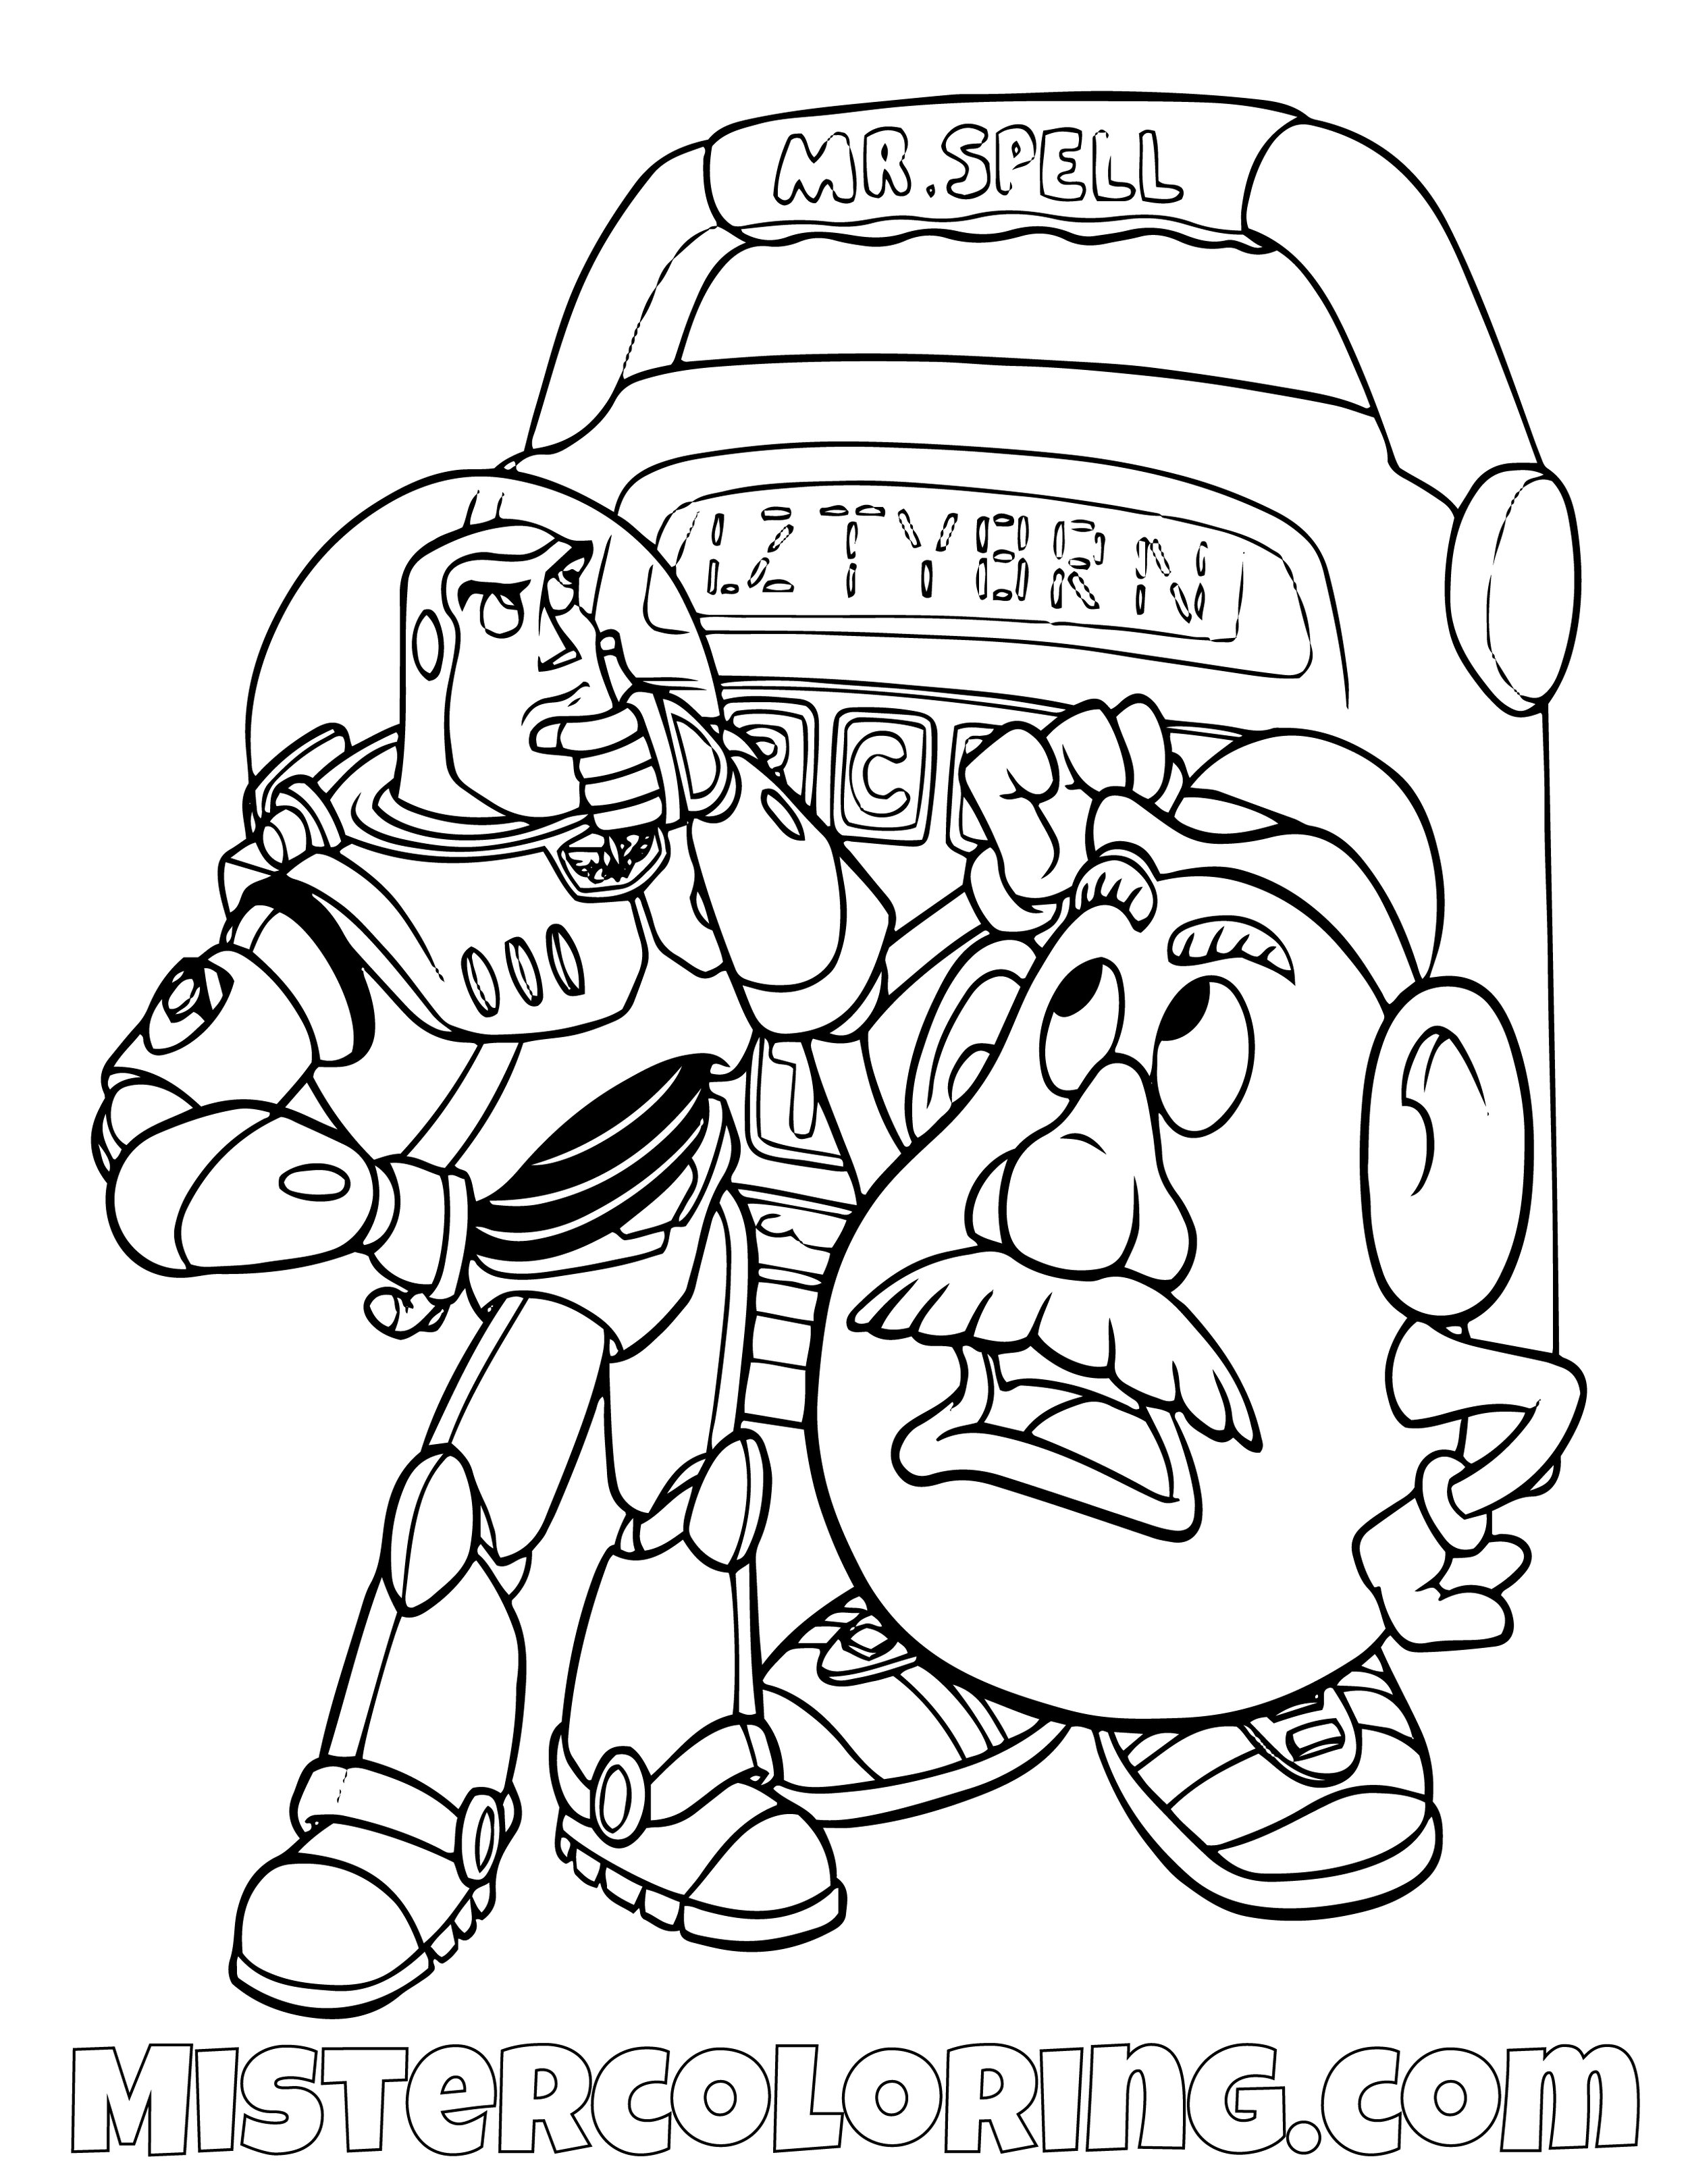 Buzz Lightyear Mr Potato Head And Mr Spell Thinking Toy Story Coloring Page